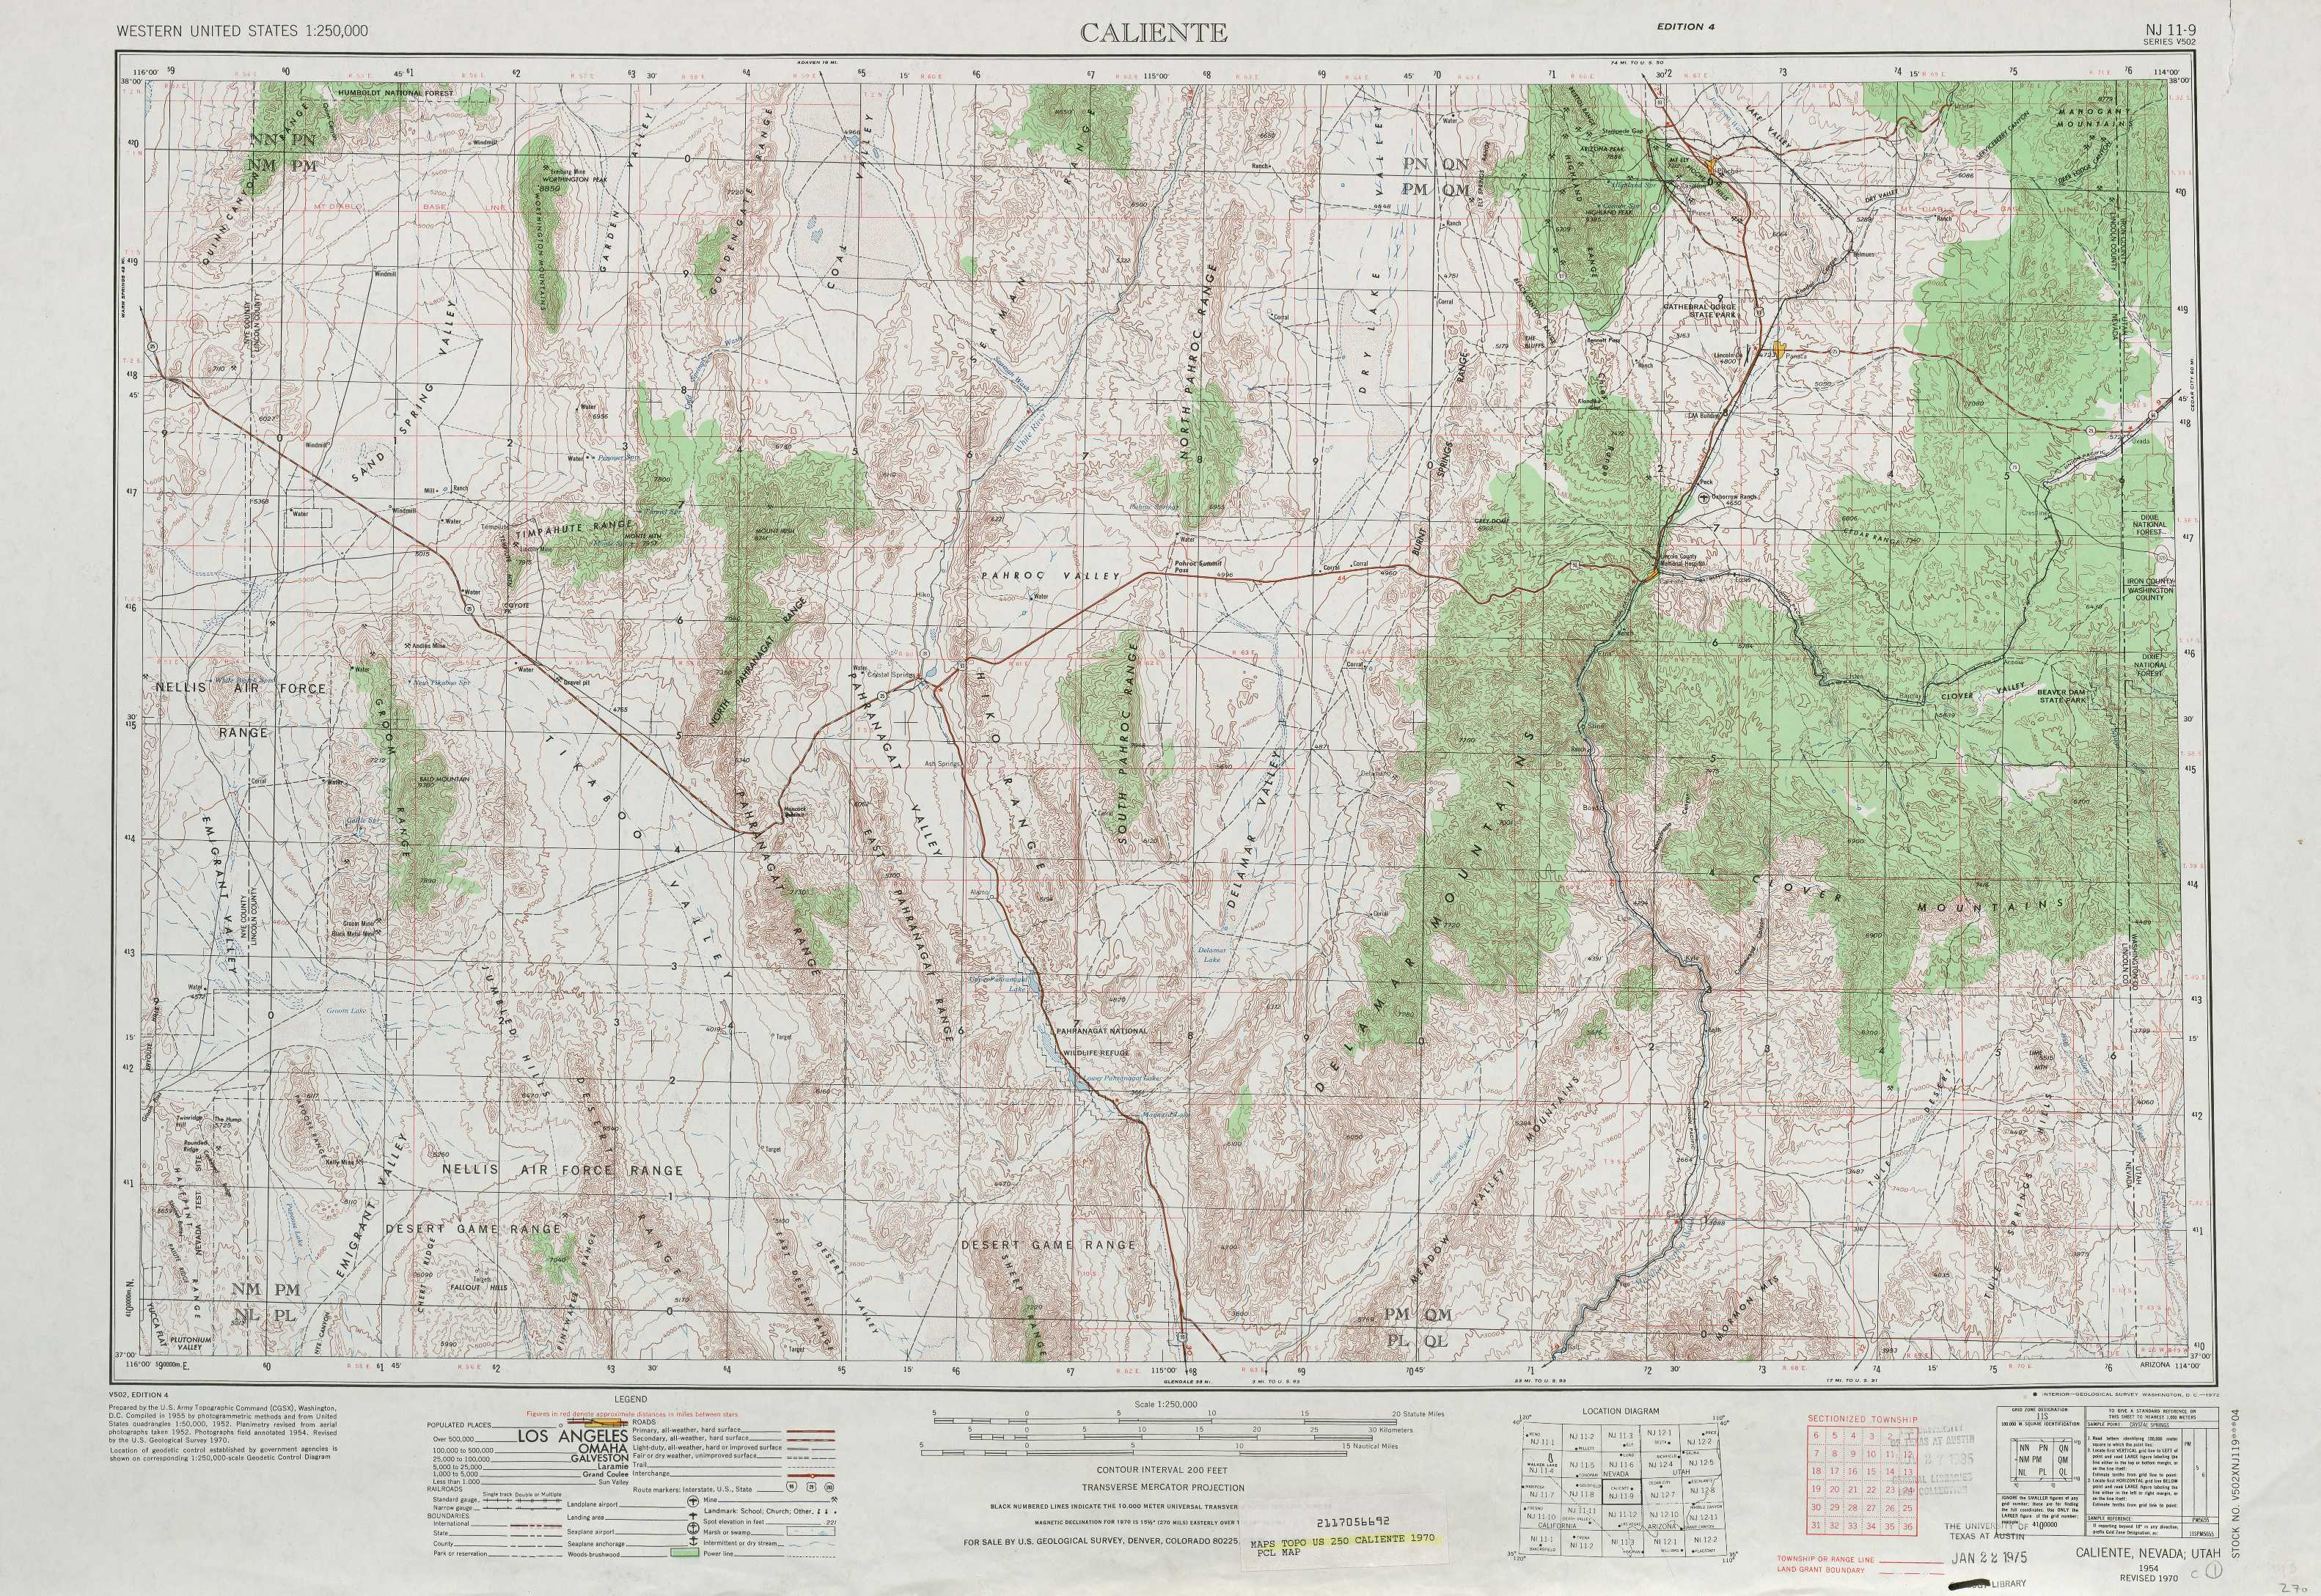 Topographic Map Of Nevada.Caliente Topographic Maps Nv Ut Usgs Topo Quad 37114a1 At 1